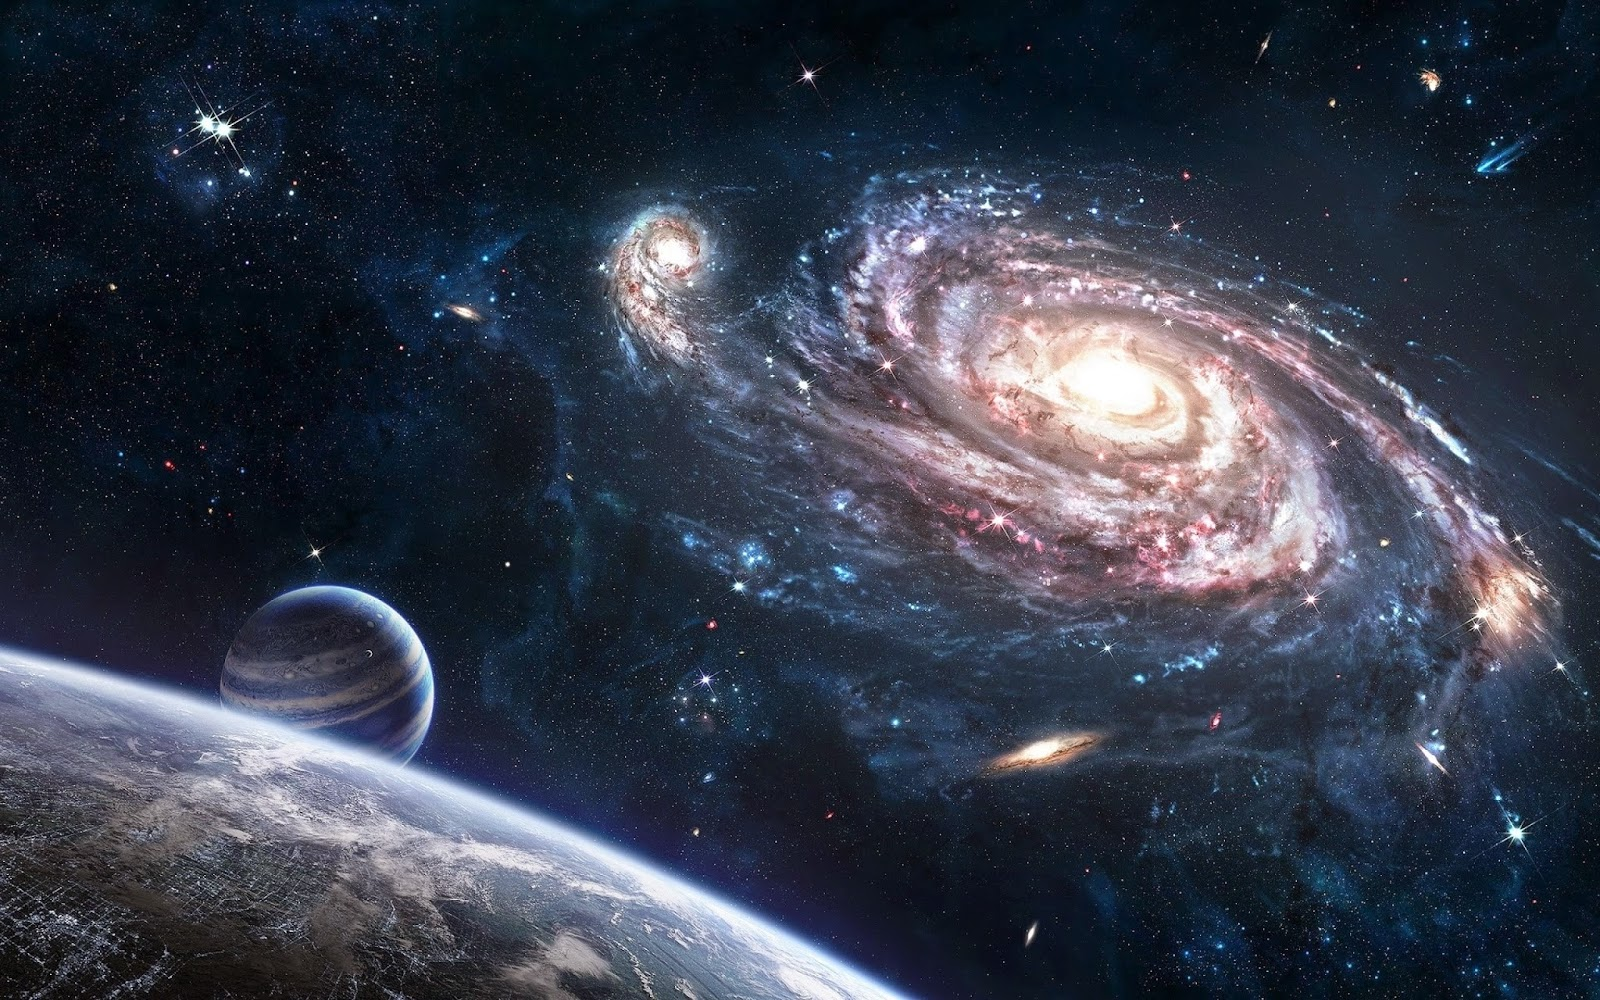 Best Cool Wallpaper Collections Space Galaxy Wallpaper High Resolution 2880x1800 Free